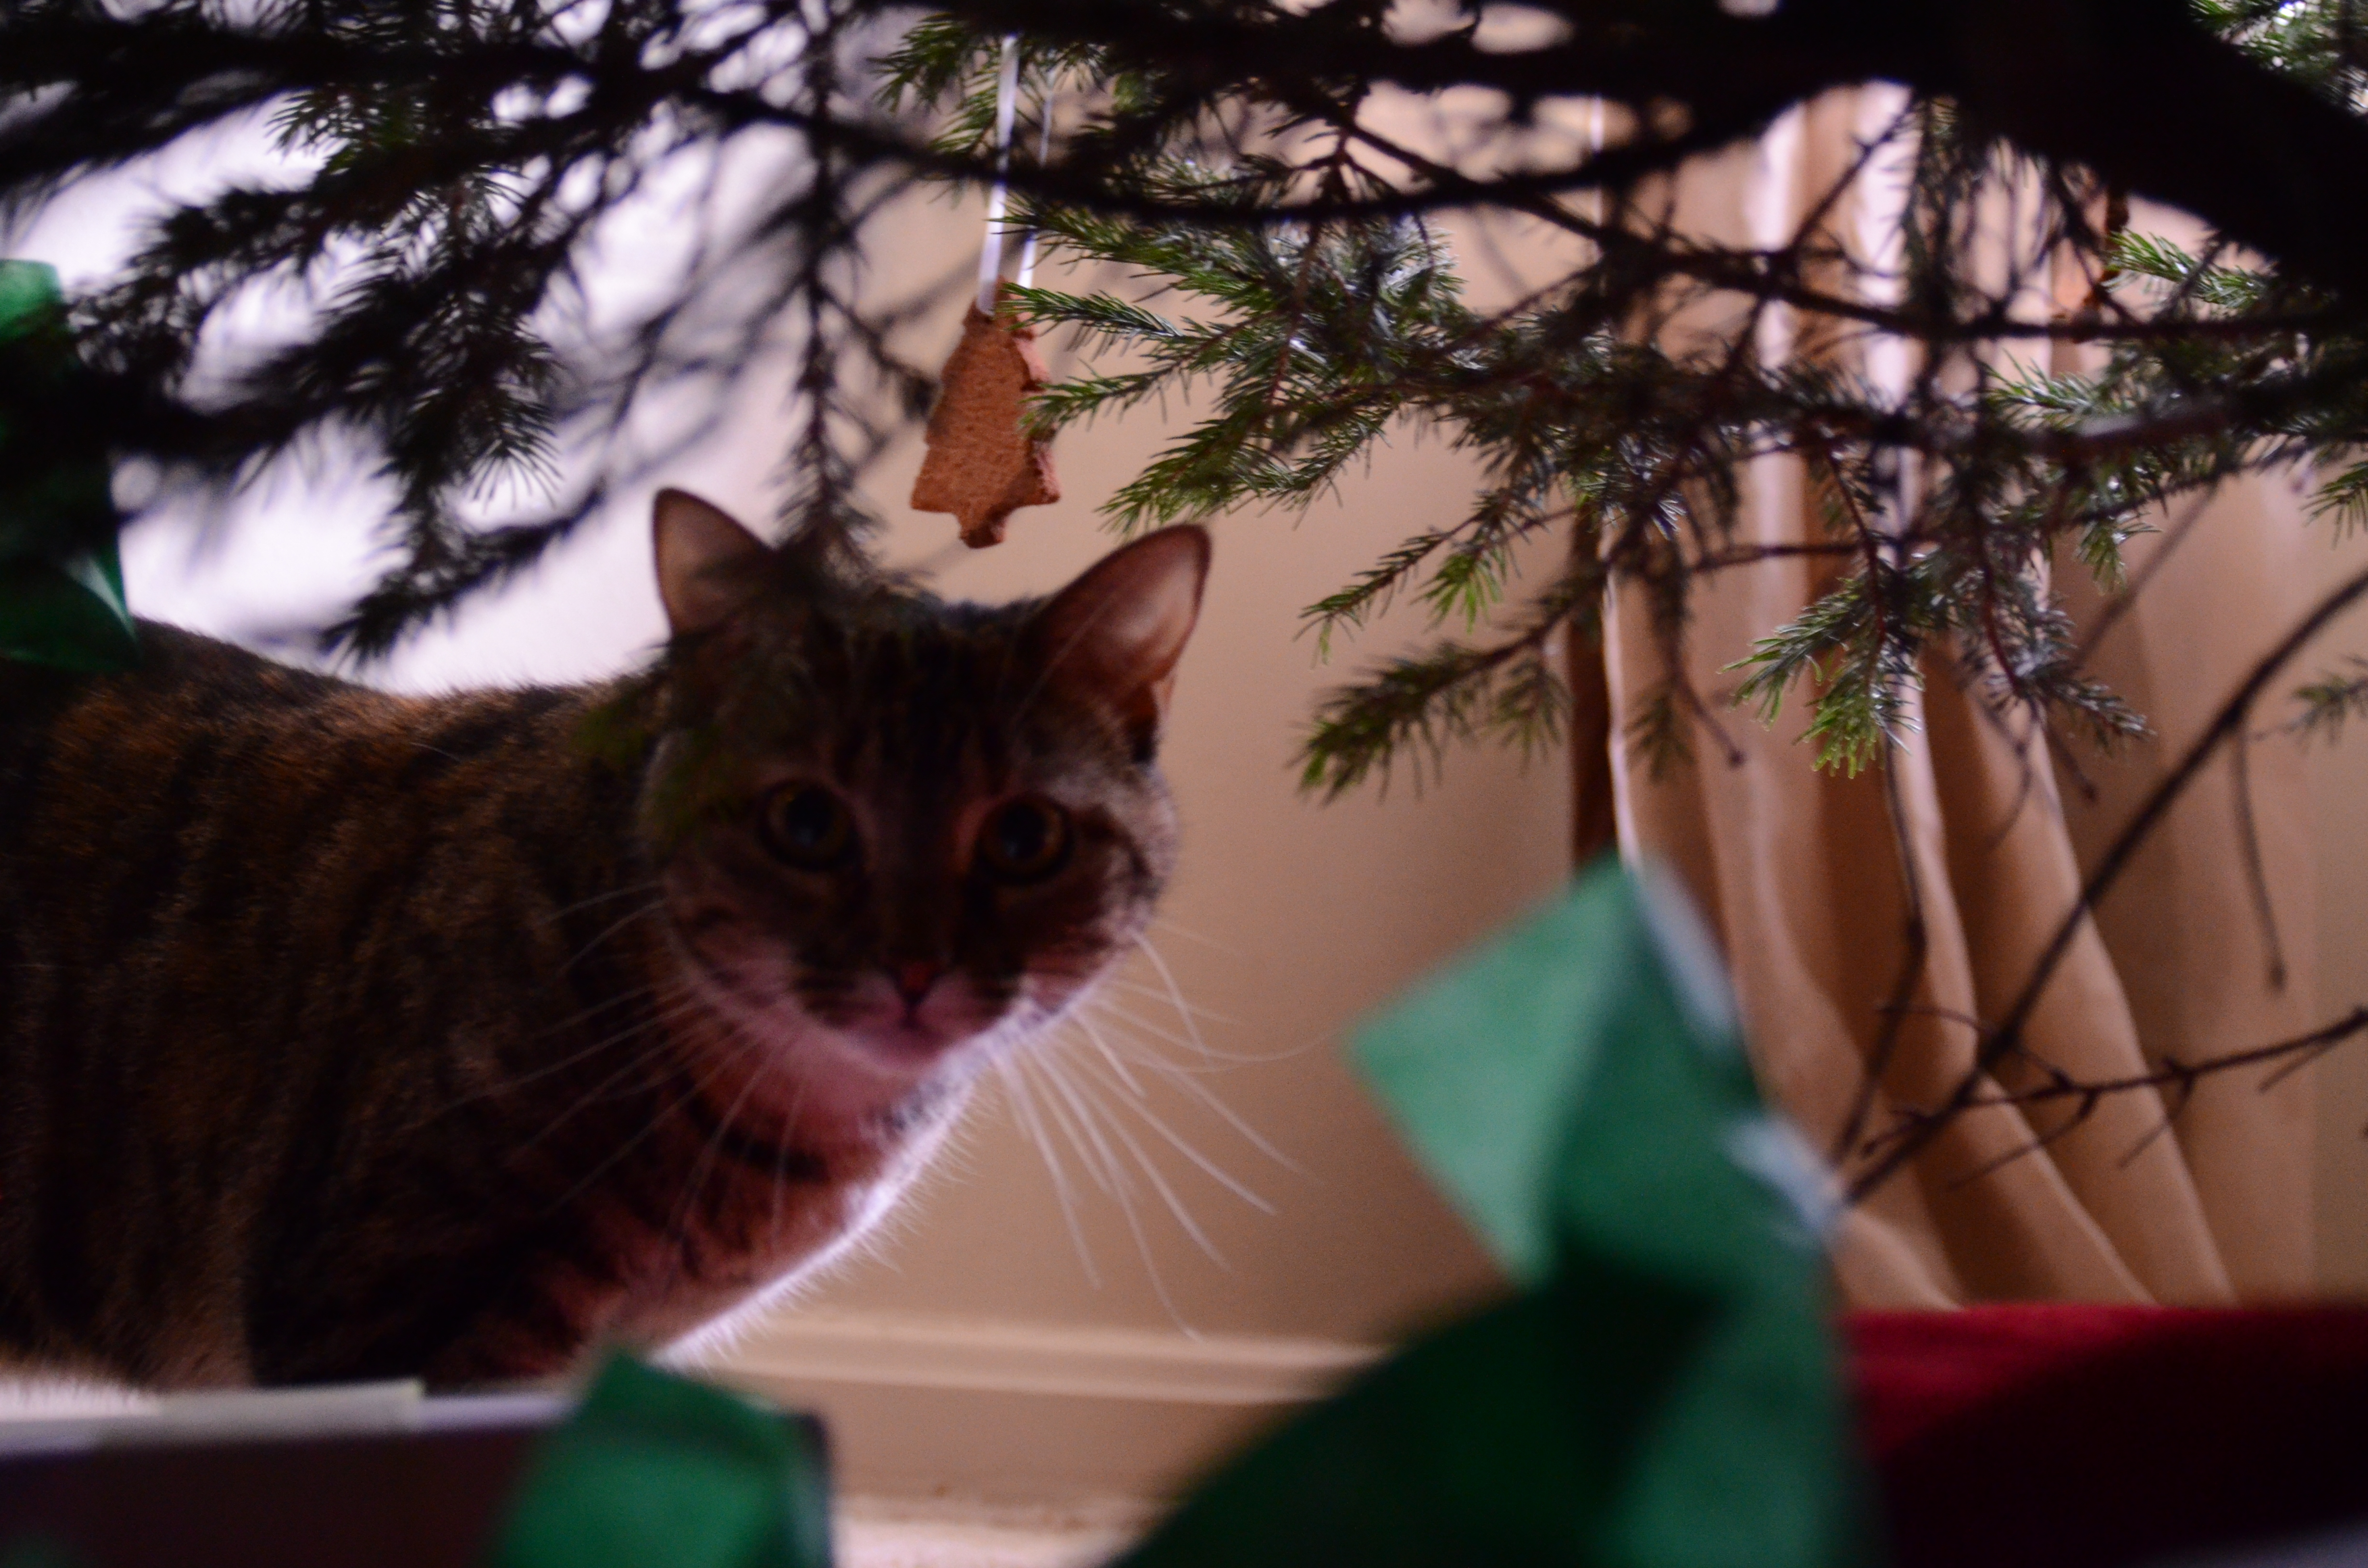 mouse isn't sure about the tree